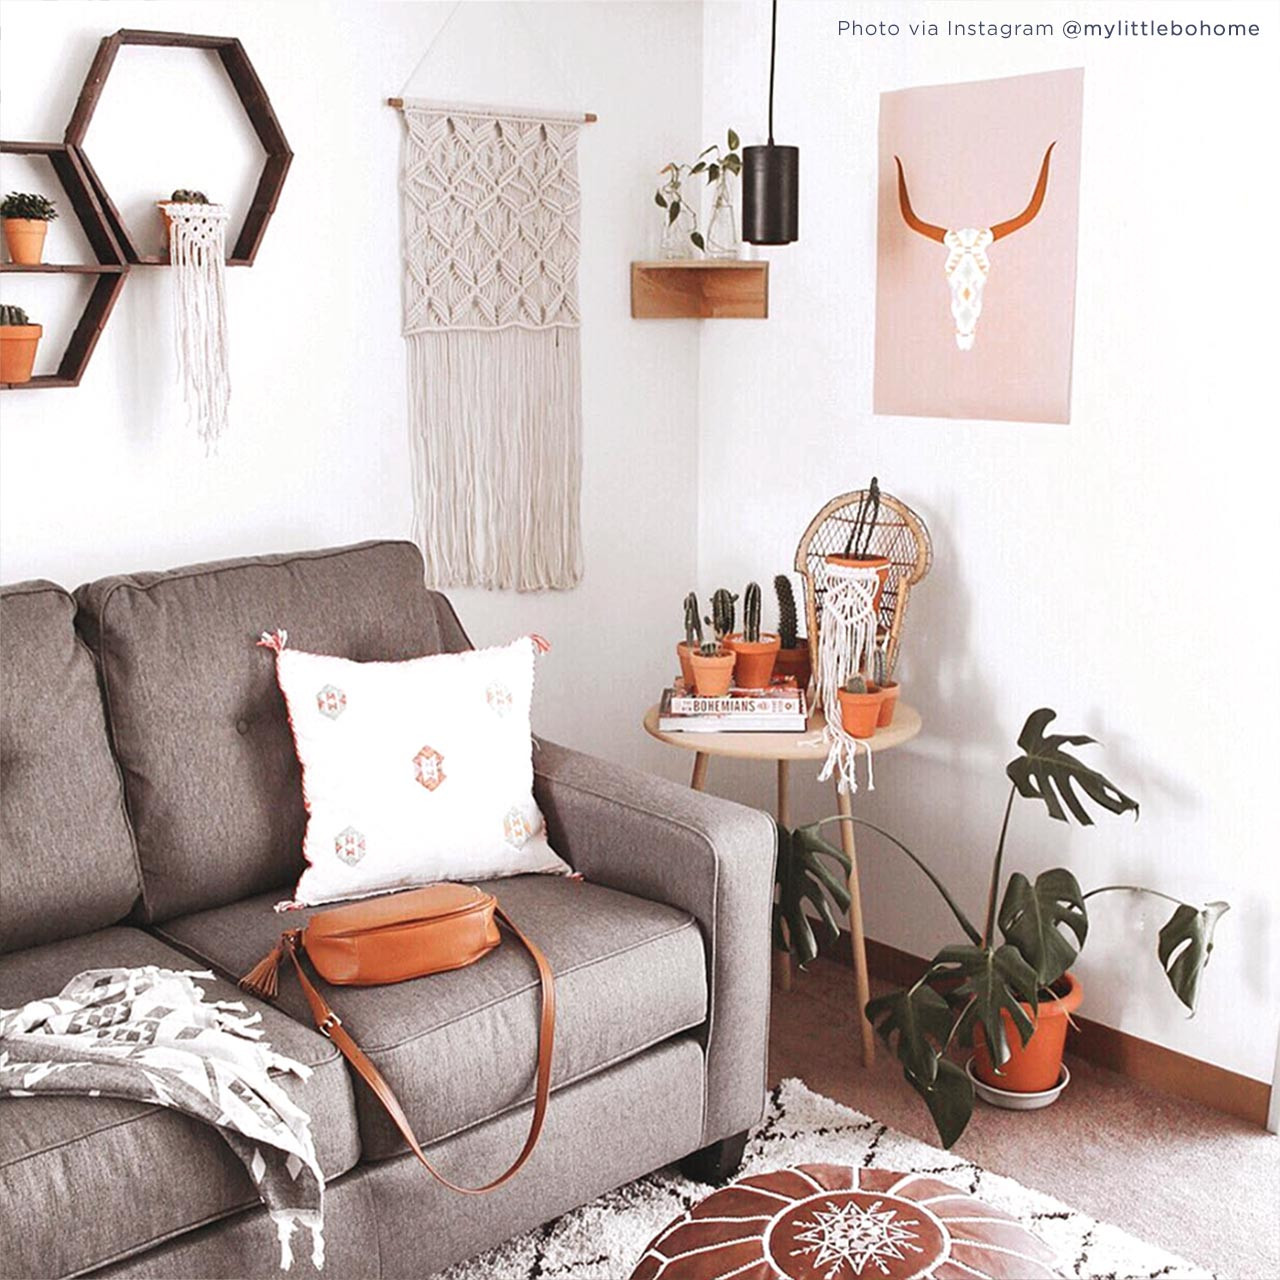 'Longhorn Skull' Art Poster in Pink from The Printed Home. Photo credit: Maddie @mylittlebohome via Instagram